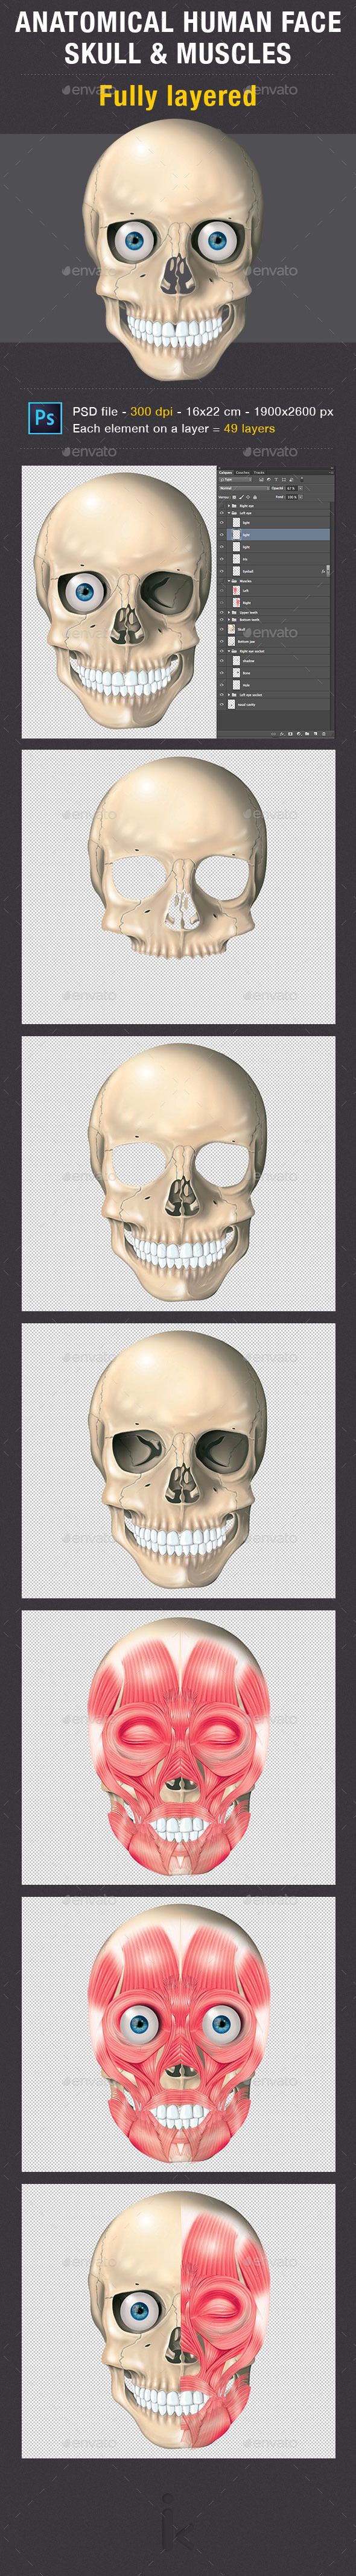 GraphicRiver Anatomical Human Skull and Muscles 8946437